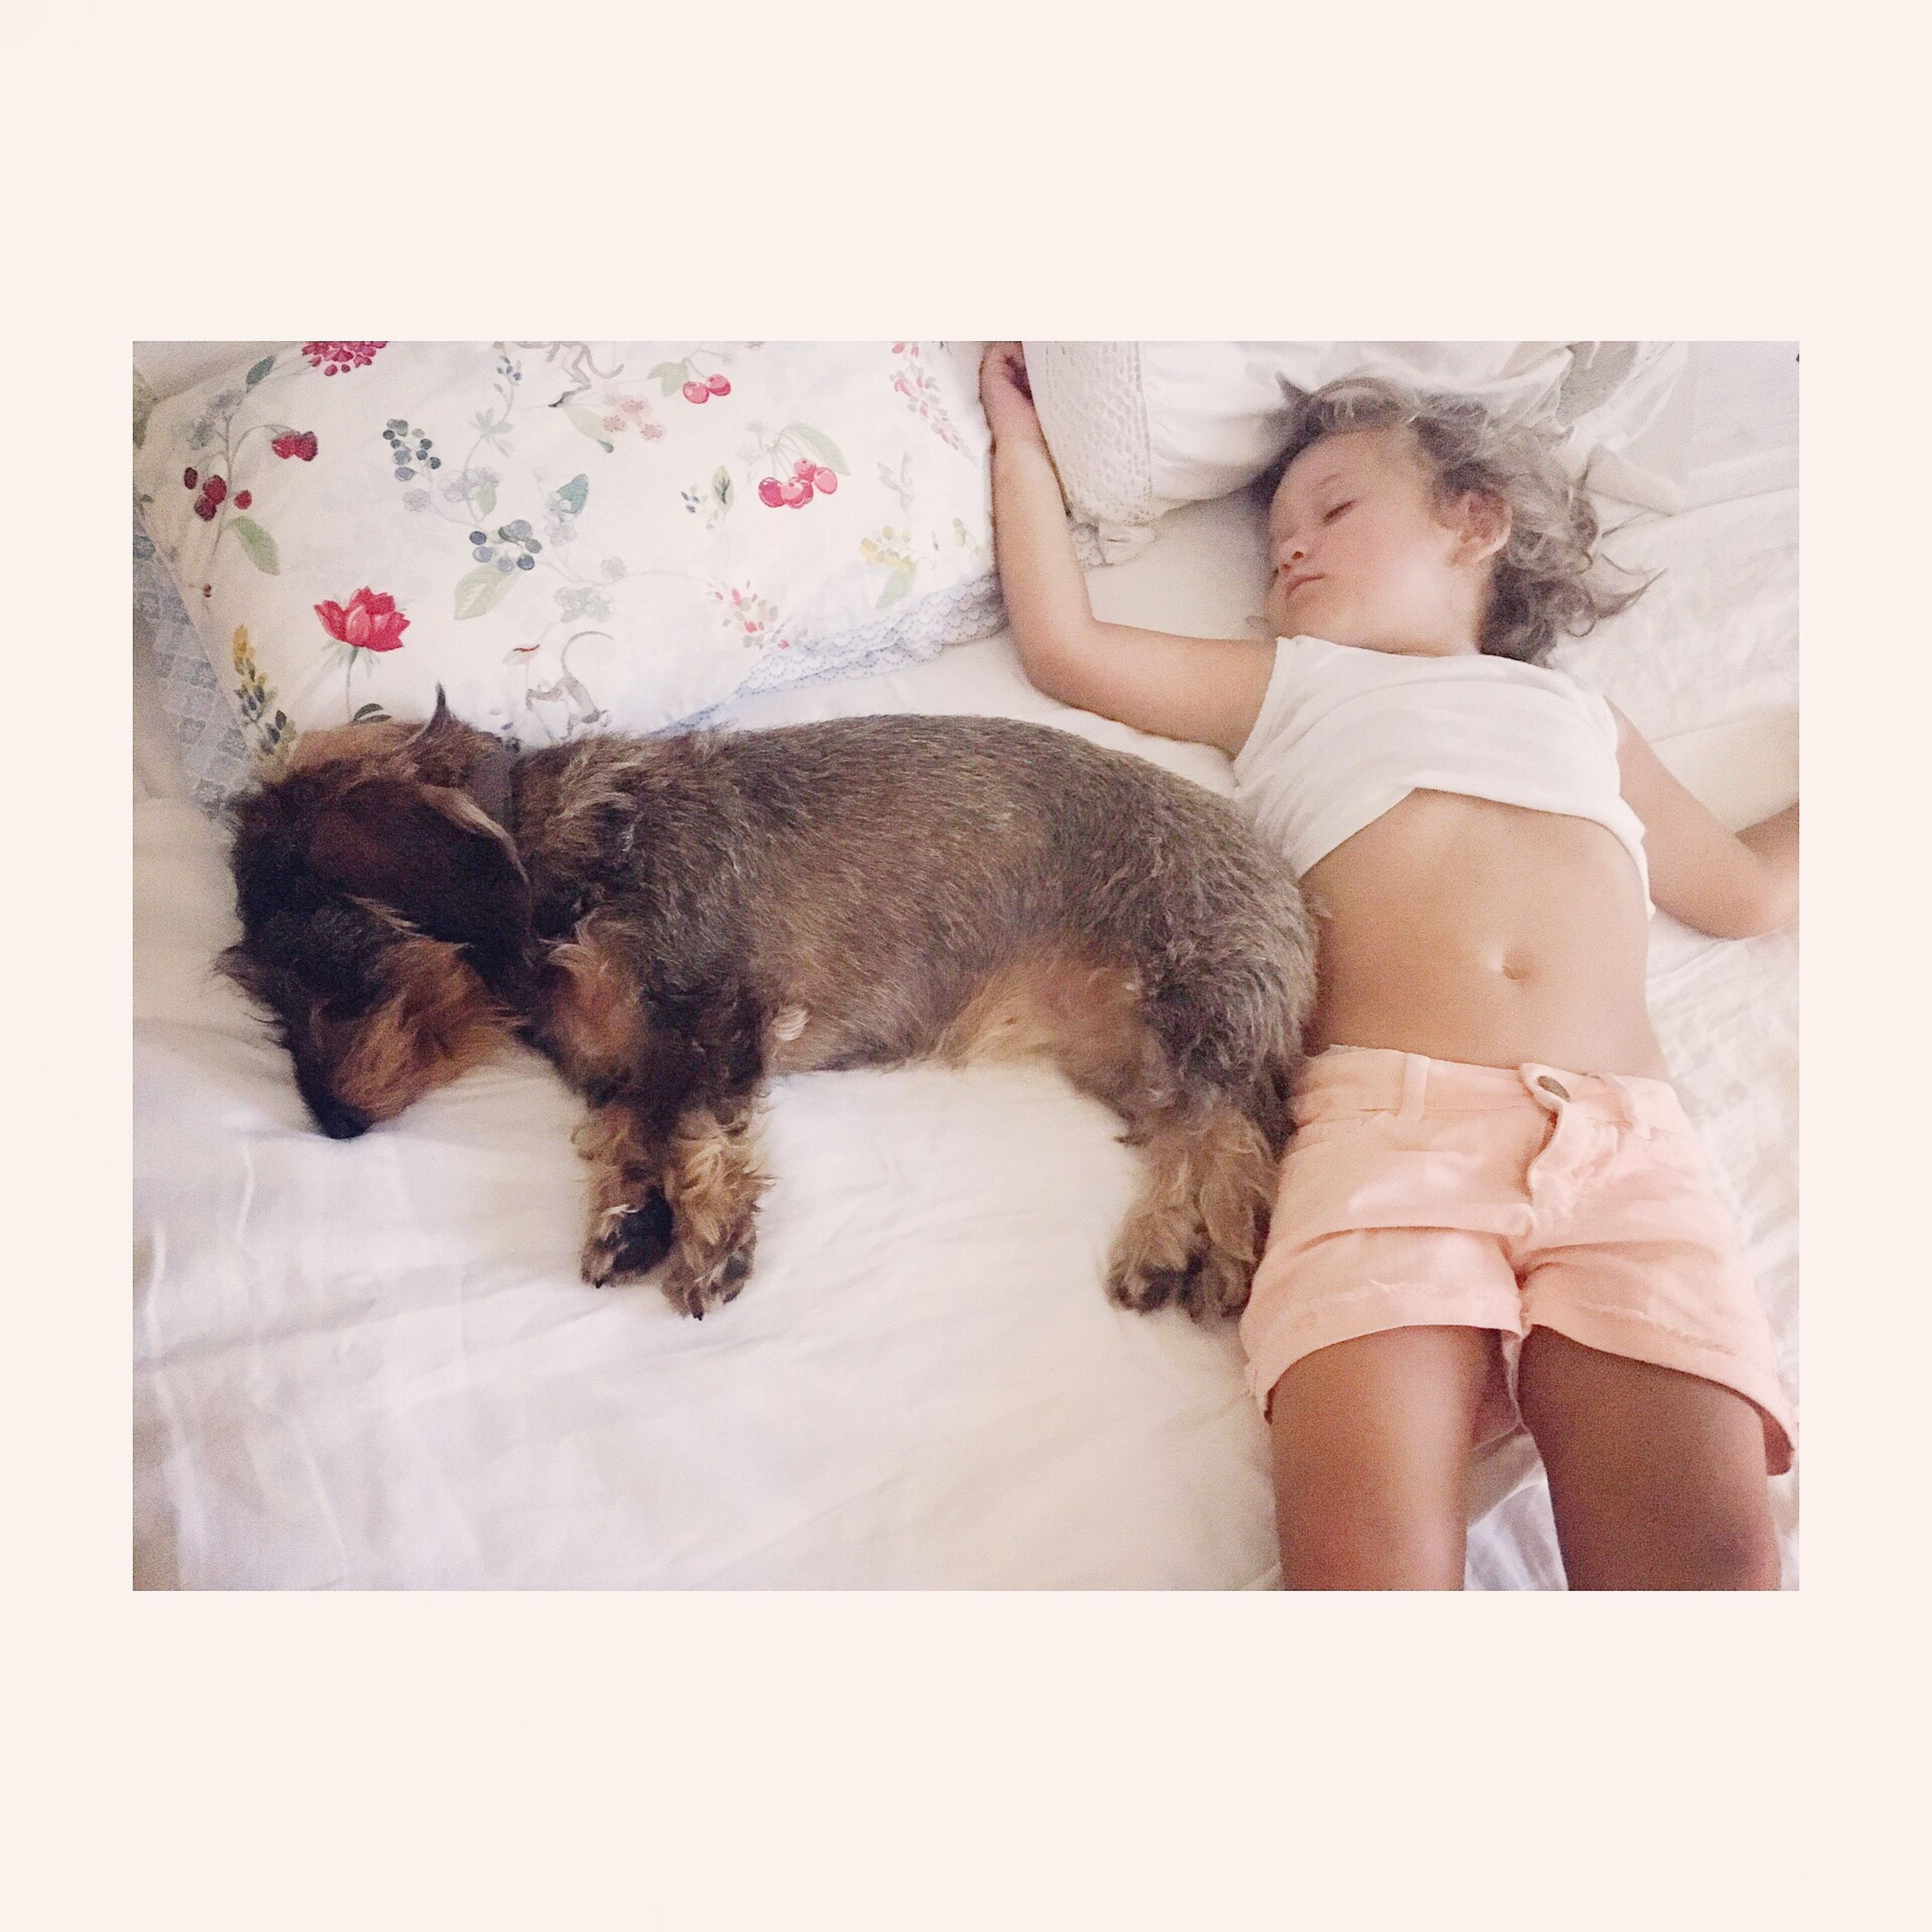 childhood, real people, pets, one animal, domestic animals, girls, bed, one person, animal themes, dog, full length, cute, indoors, elementary age, bonding, lifestyles, mammal, friendship, day